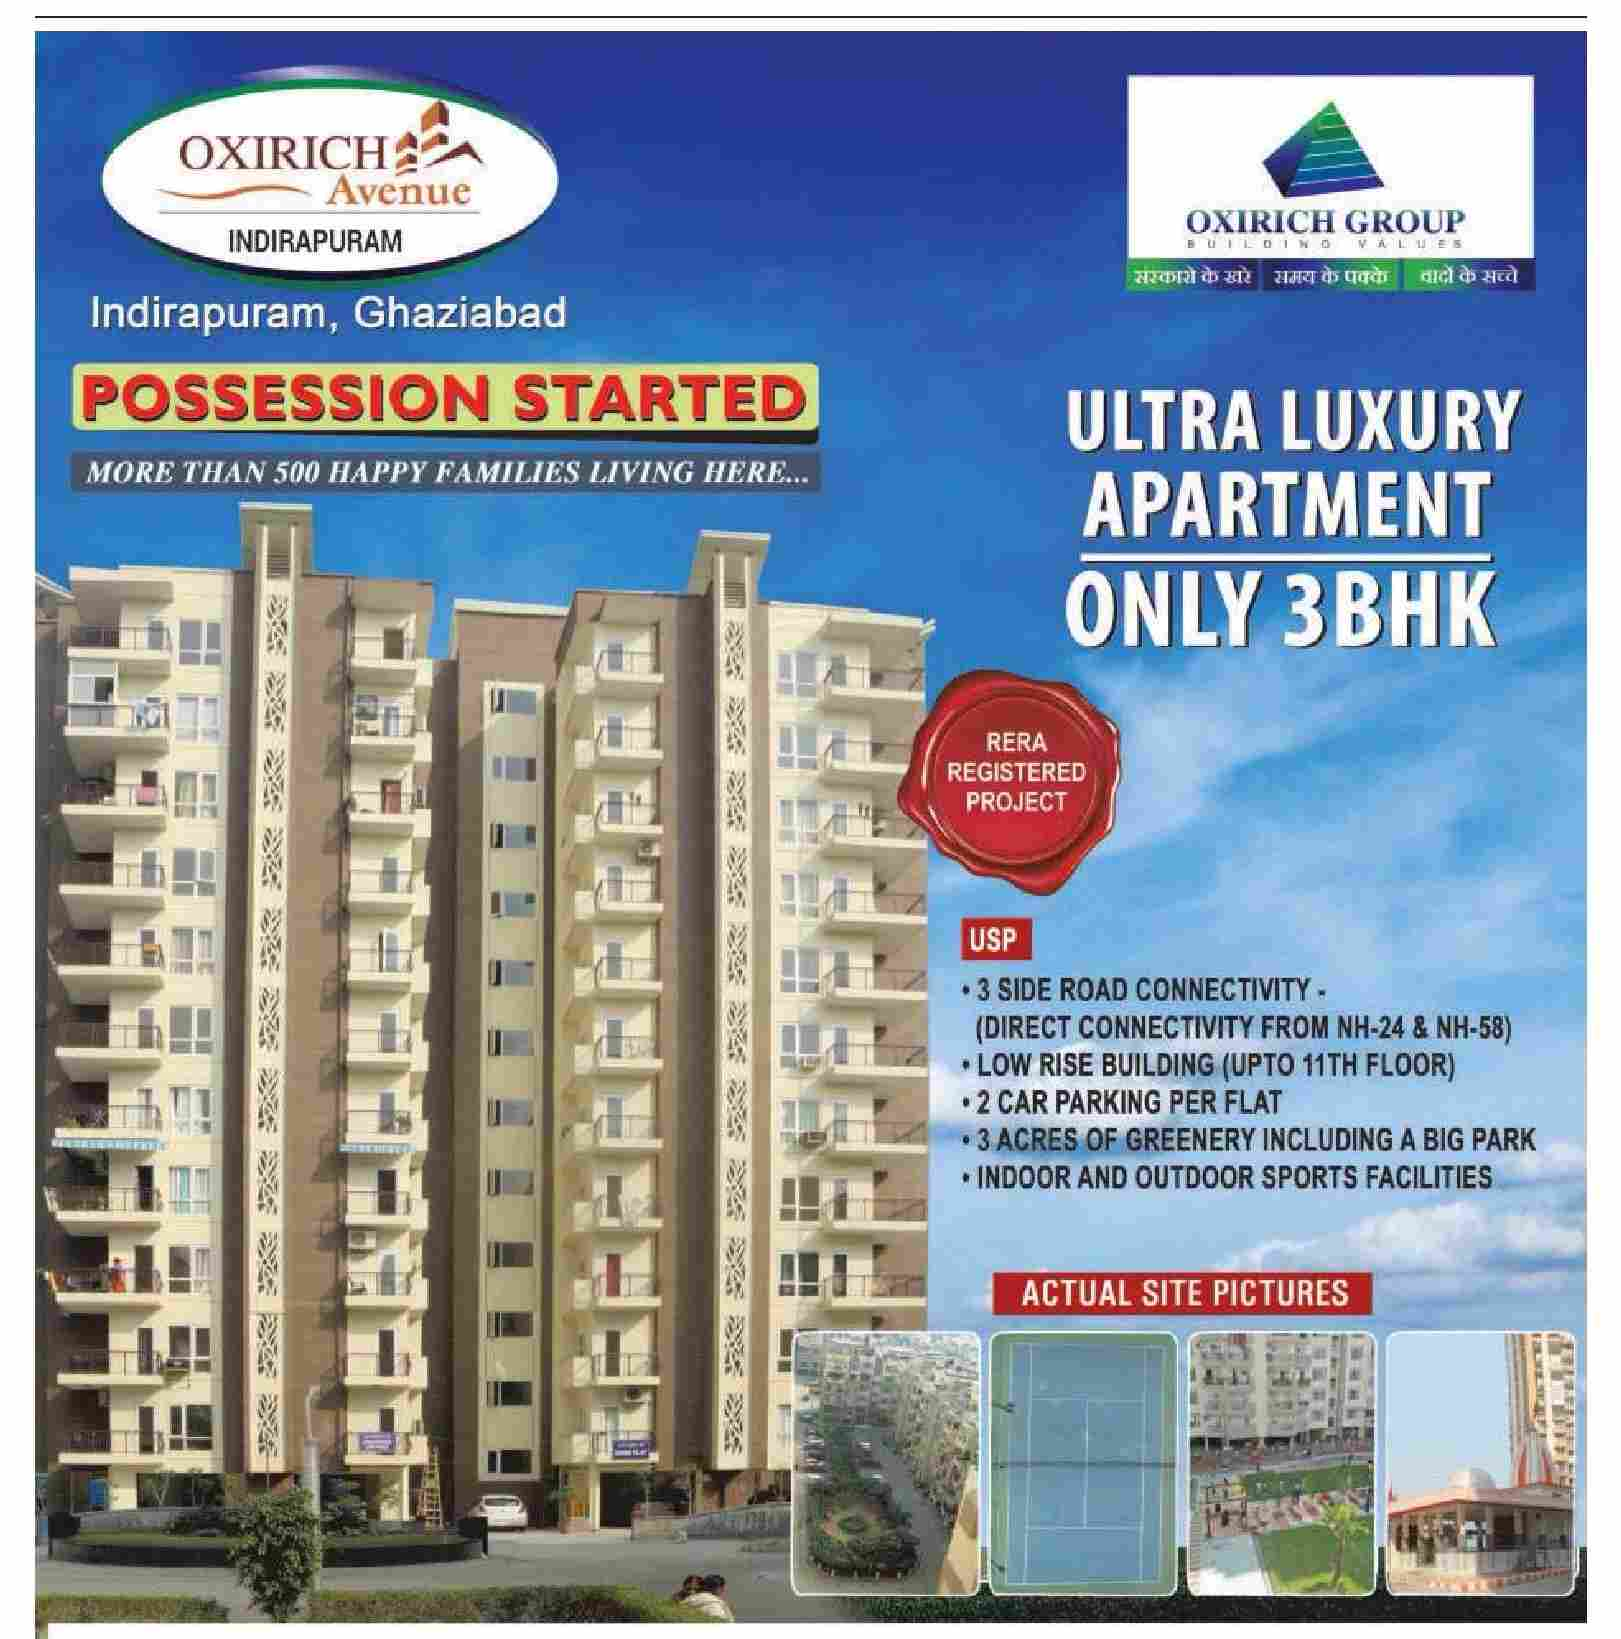 Apartment Ad: Live In Ultra Luxury Apartments At Oxirich Avenue In